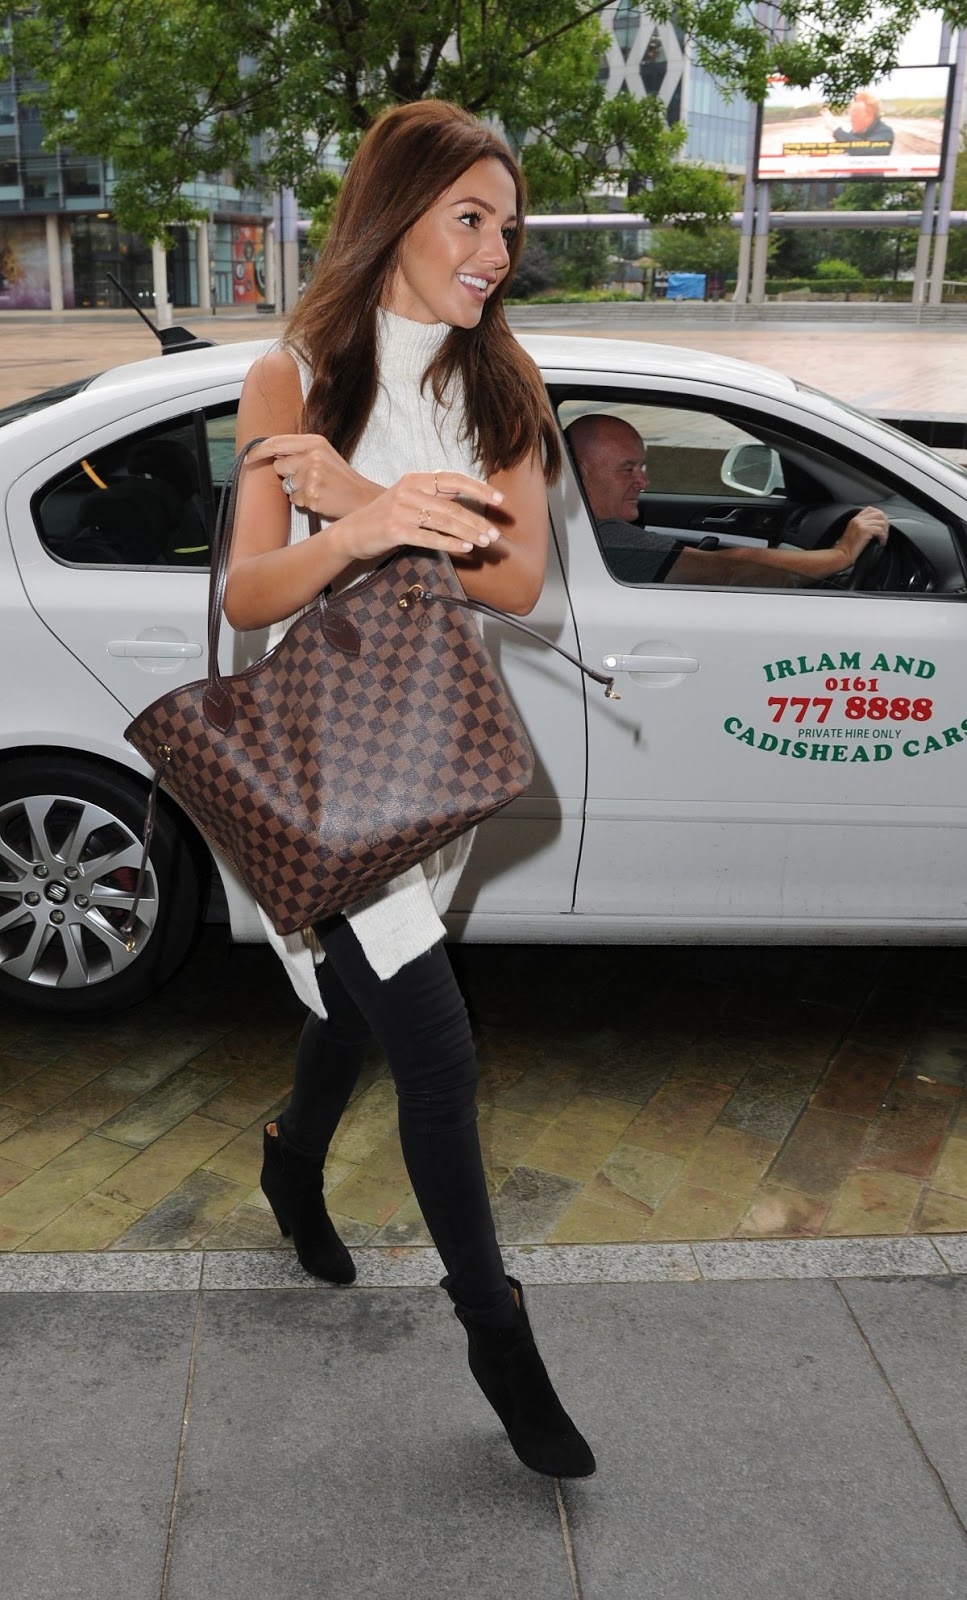 Photos of Michelle Keegan in White & Black dress At BBC Breakfast Studios In Manchester